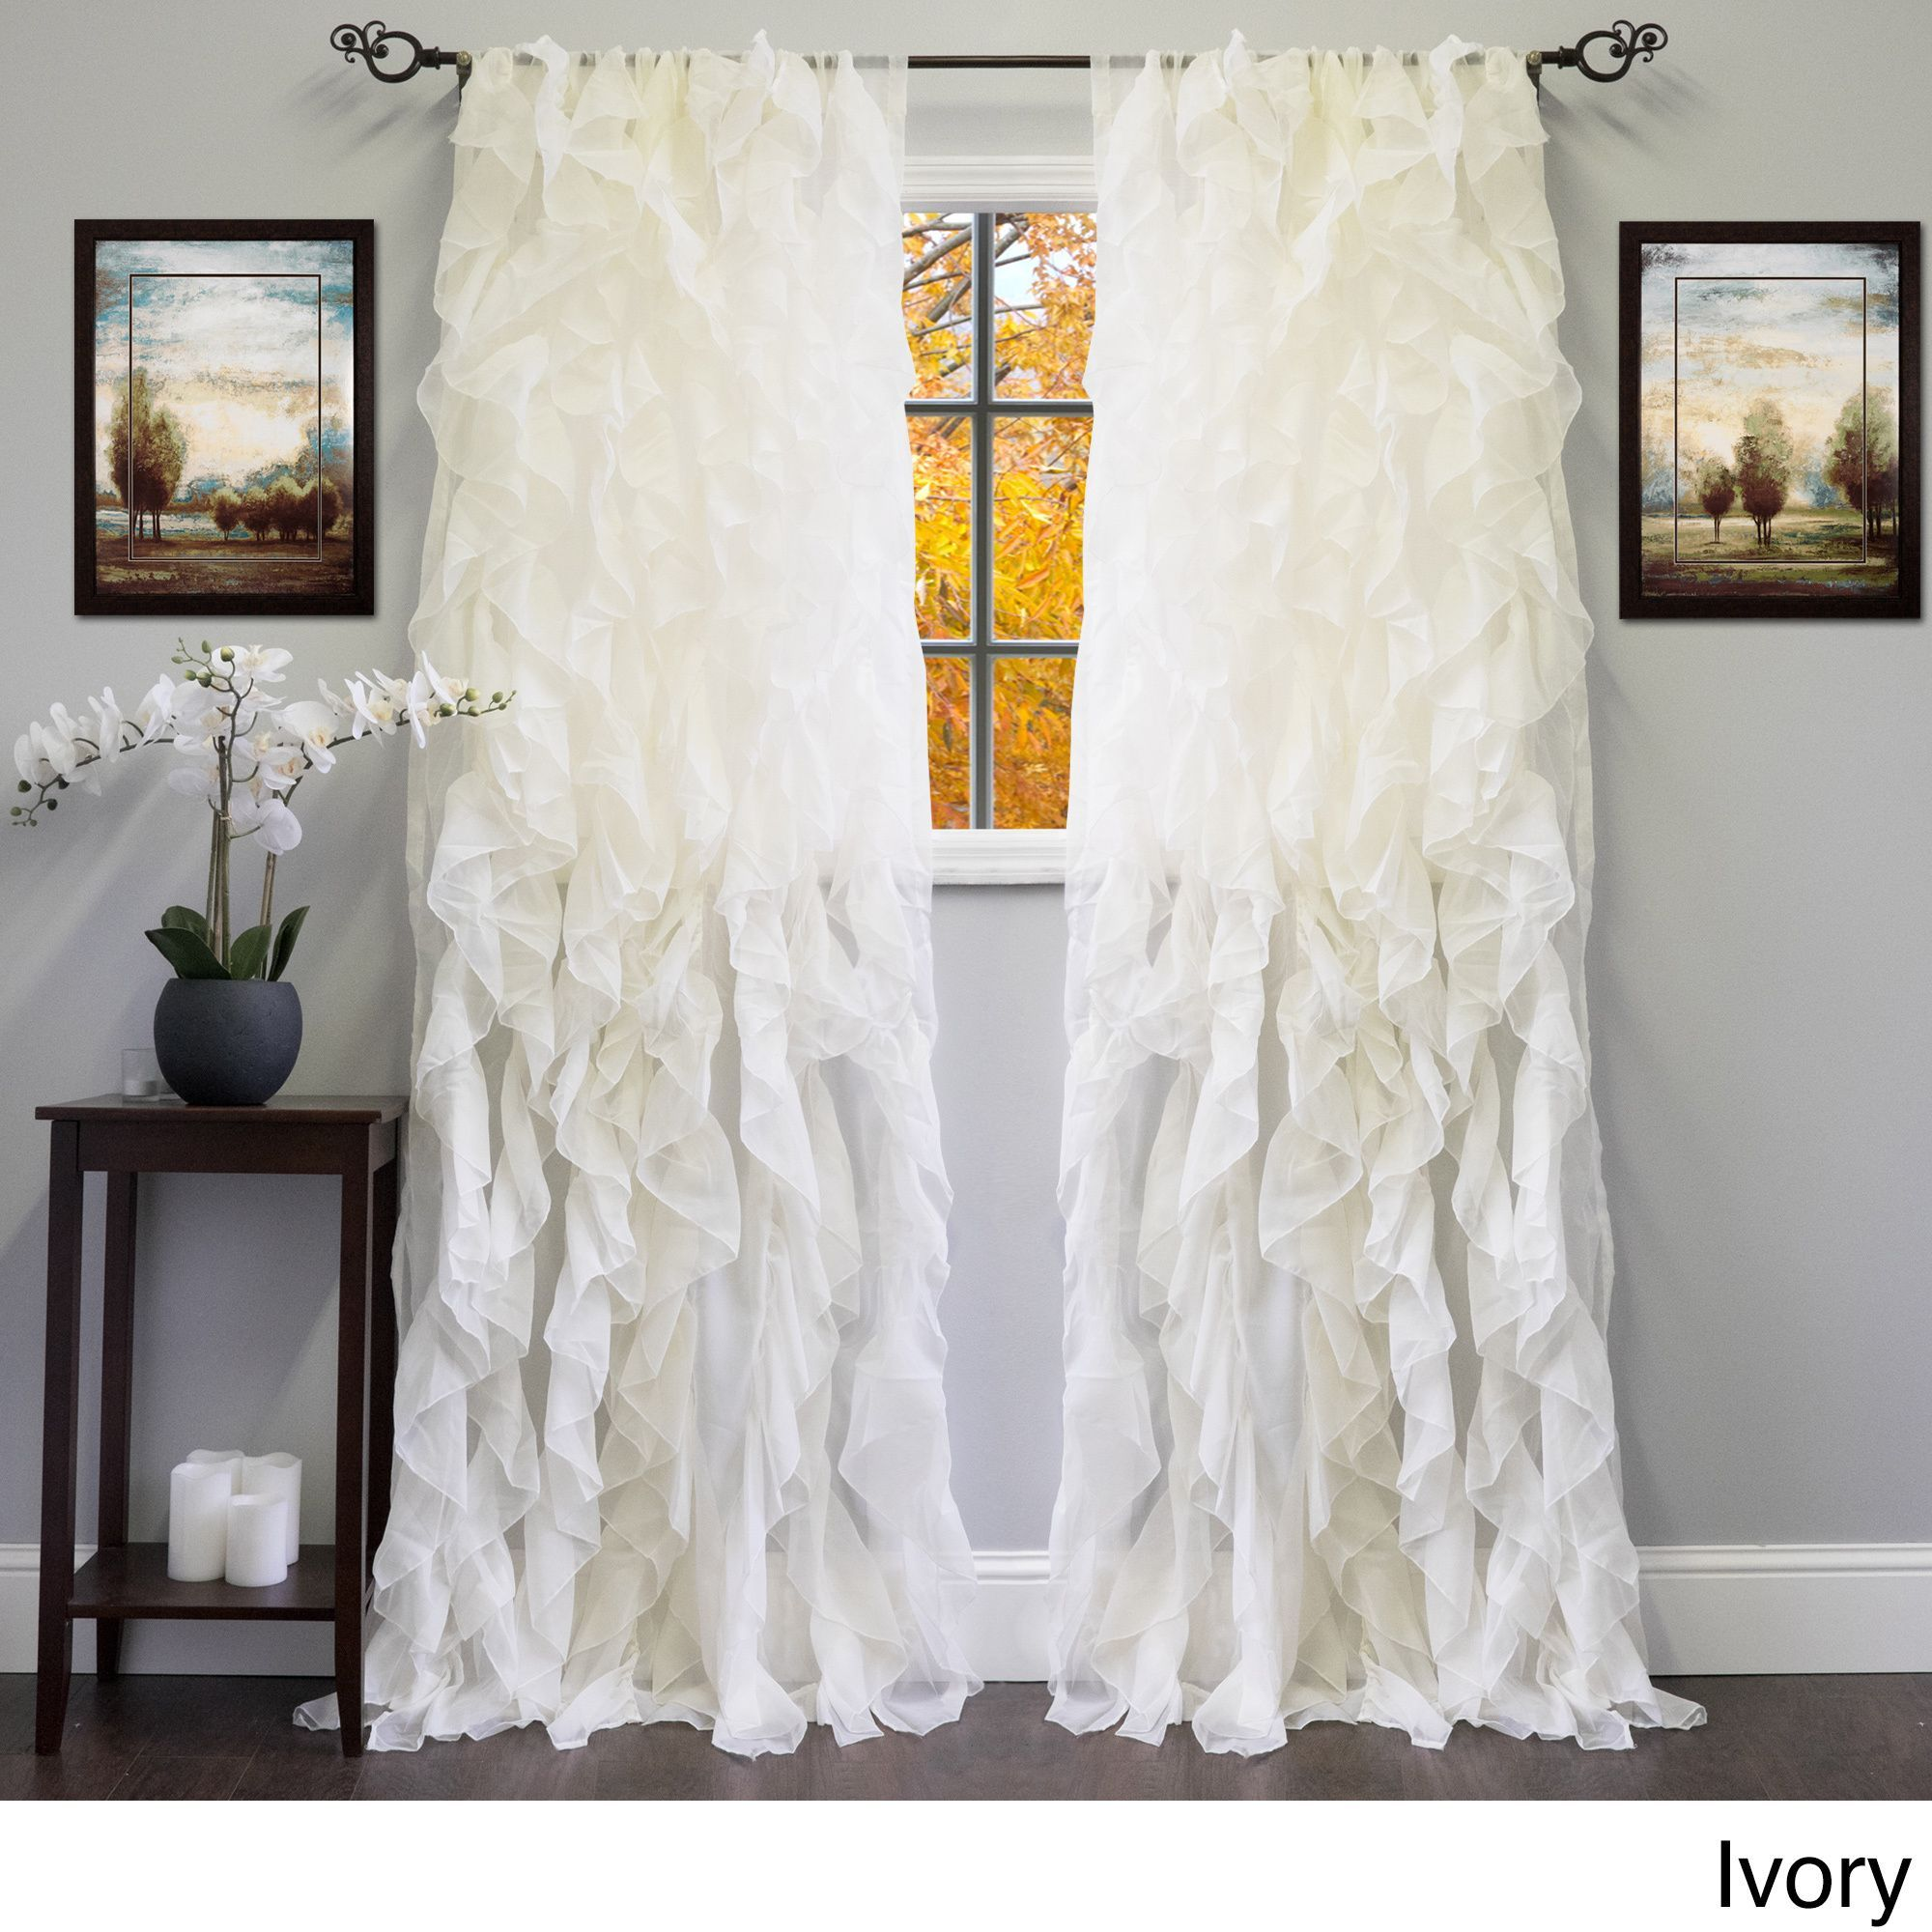 style pleated cotton of curtainswhite out voile curtain crushed are net lined gopelling sheer curtains white